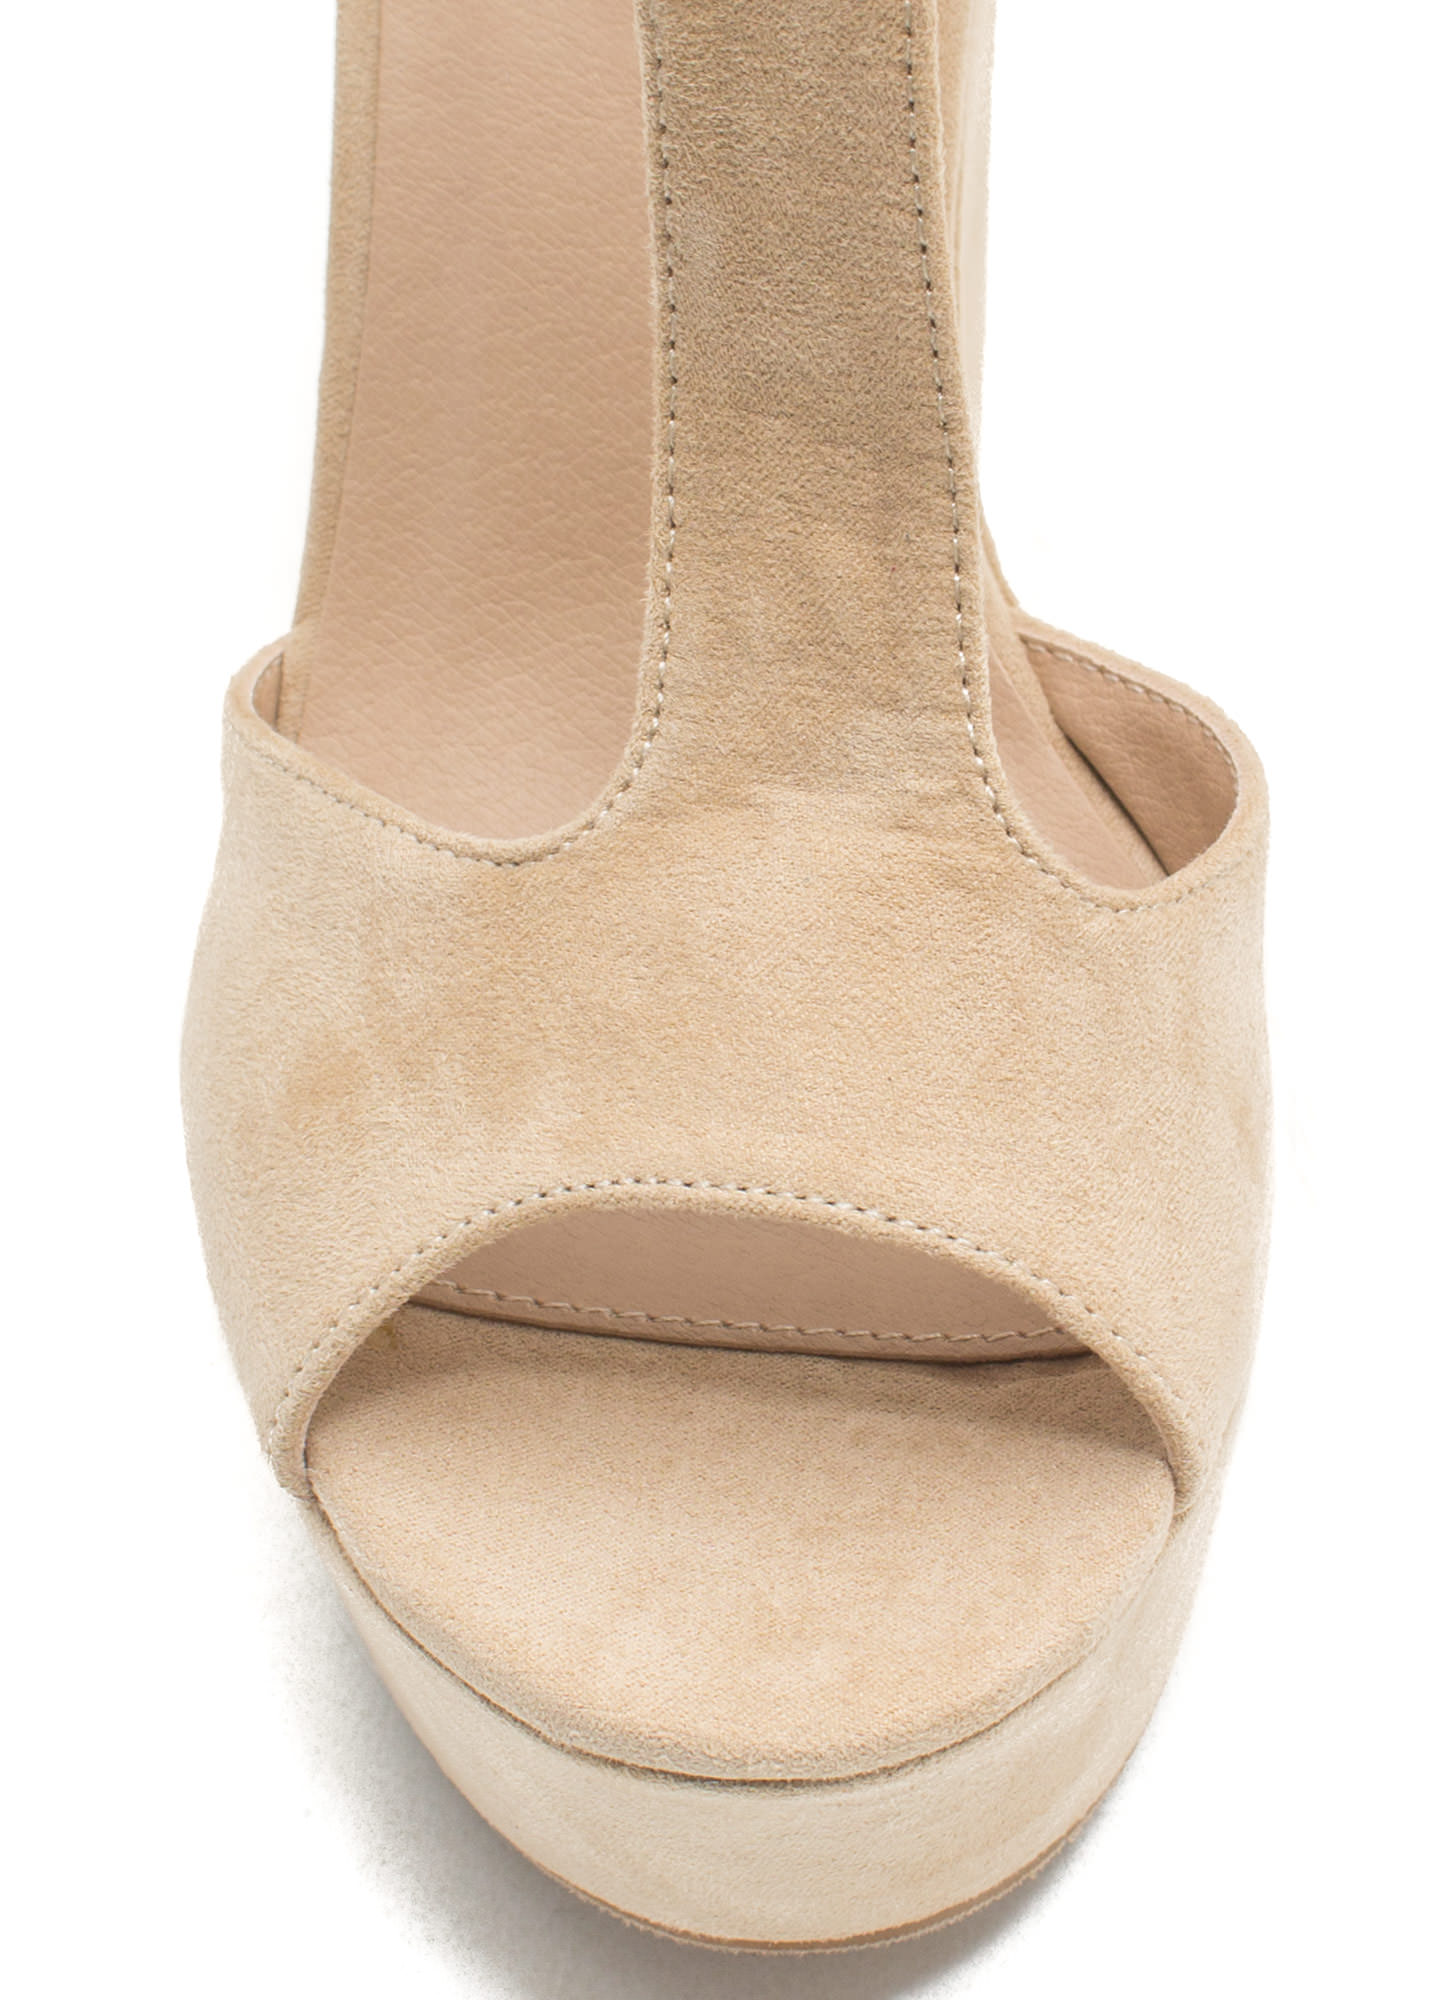 Thru Thick 'N Thin Faux Suede Heels NATURAL